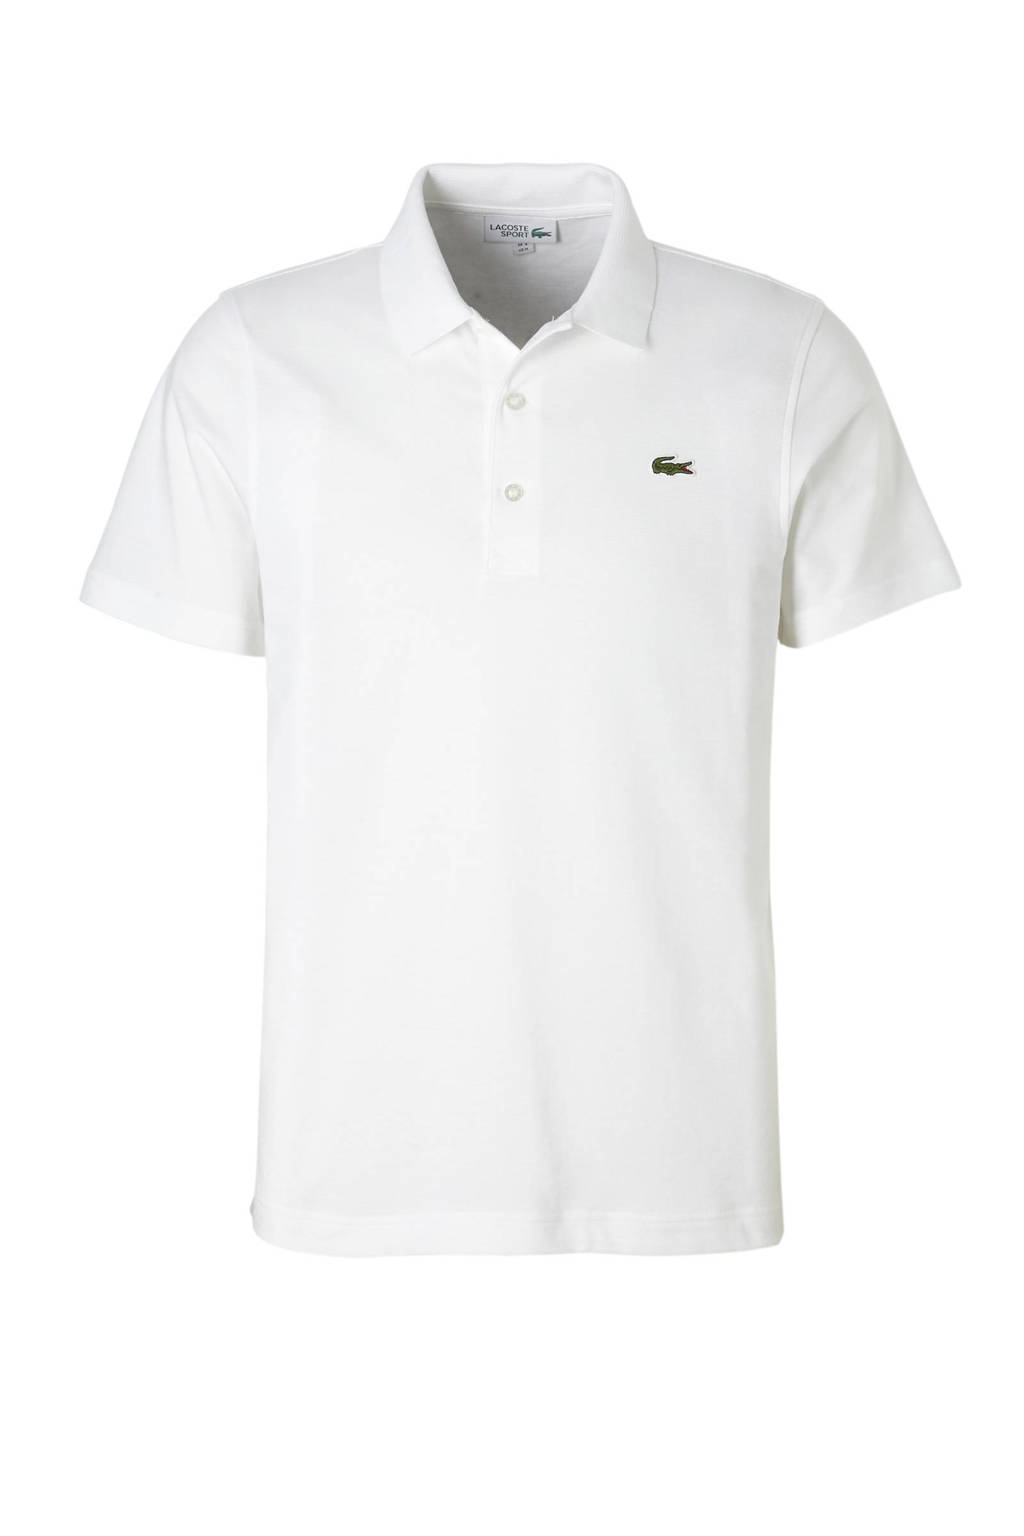 Lacoste   polo wit, Wit